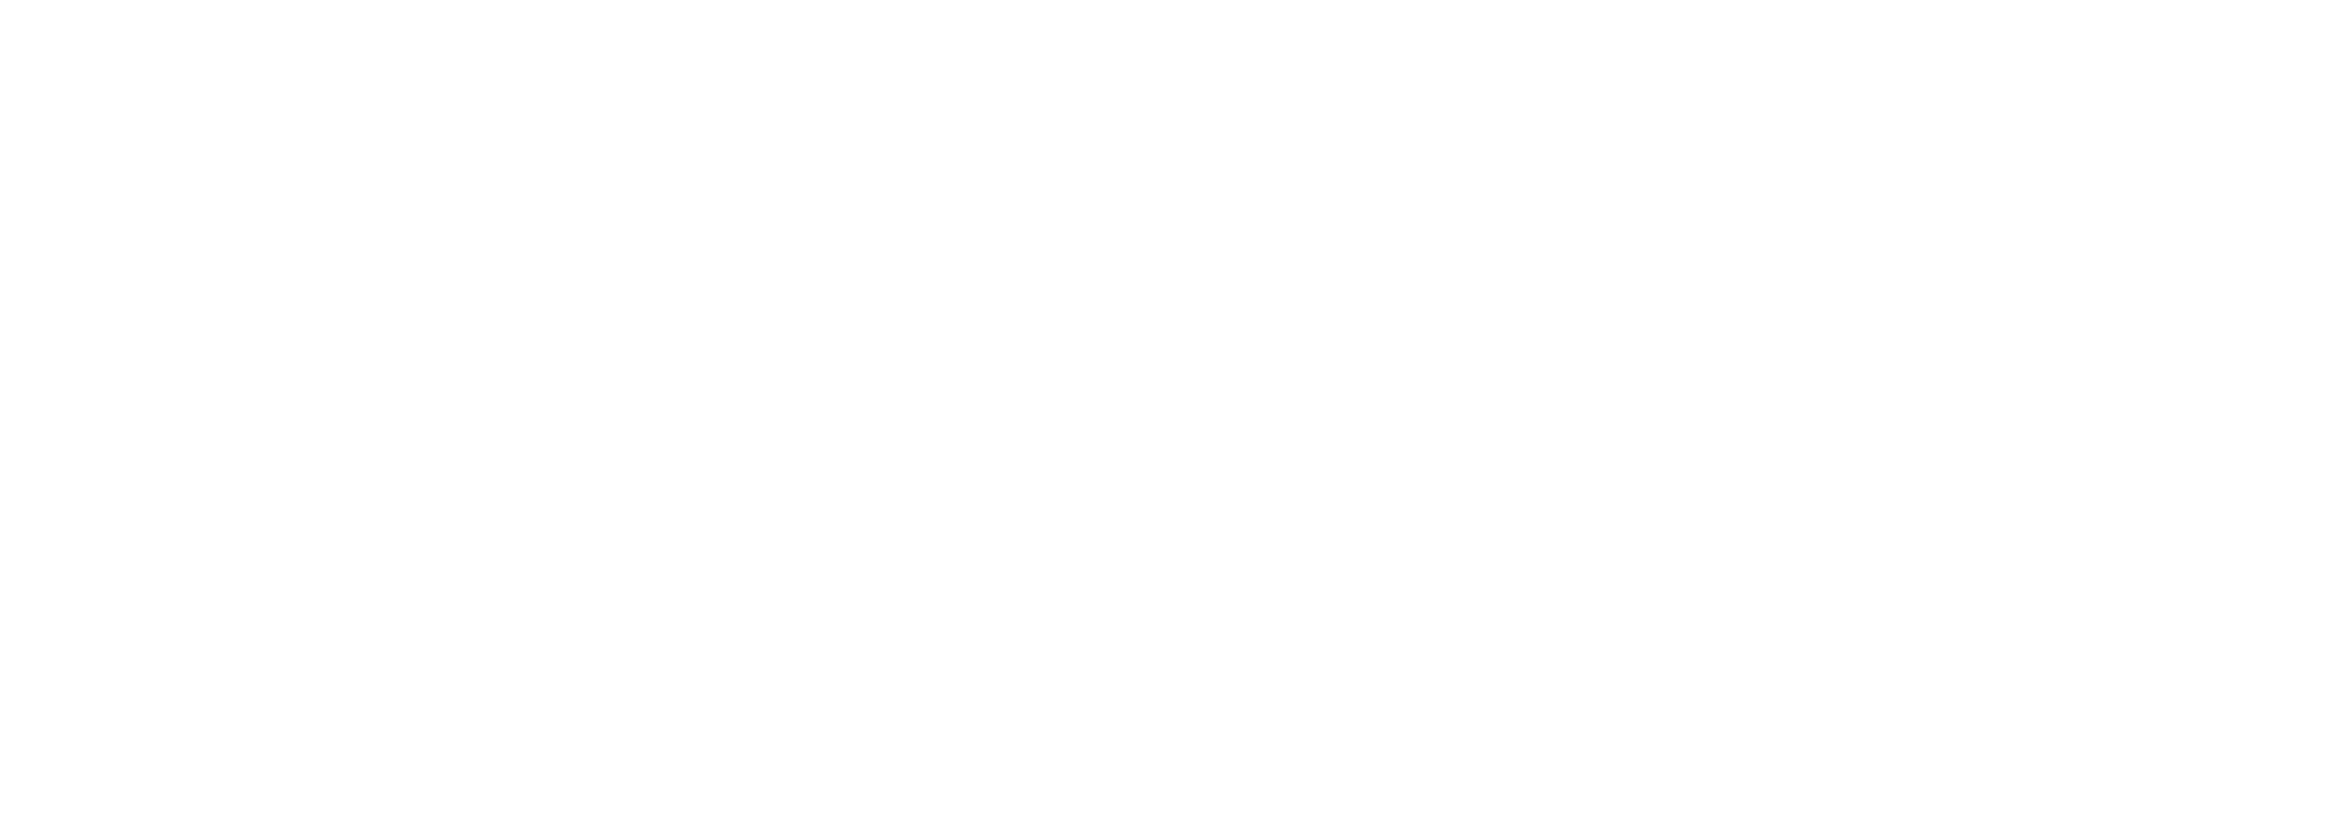 Purple Camas Consulting